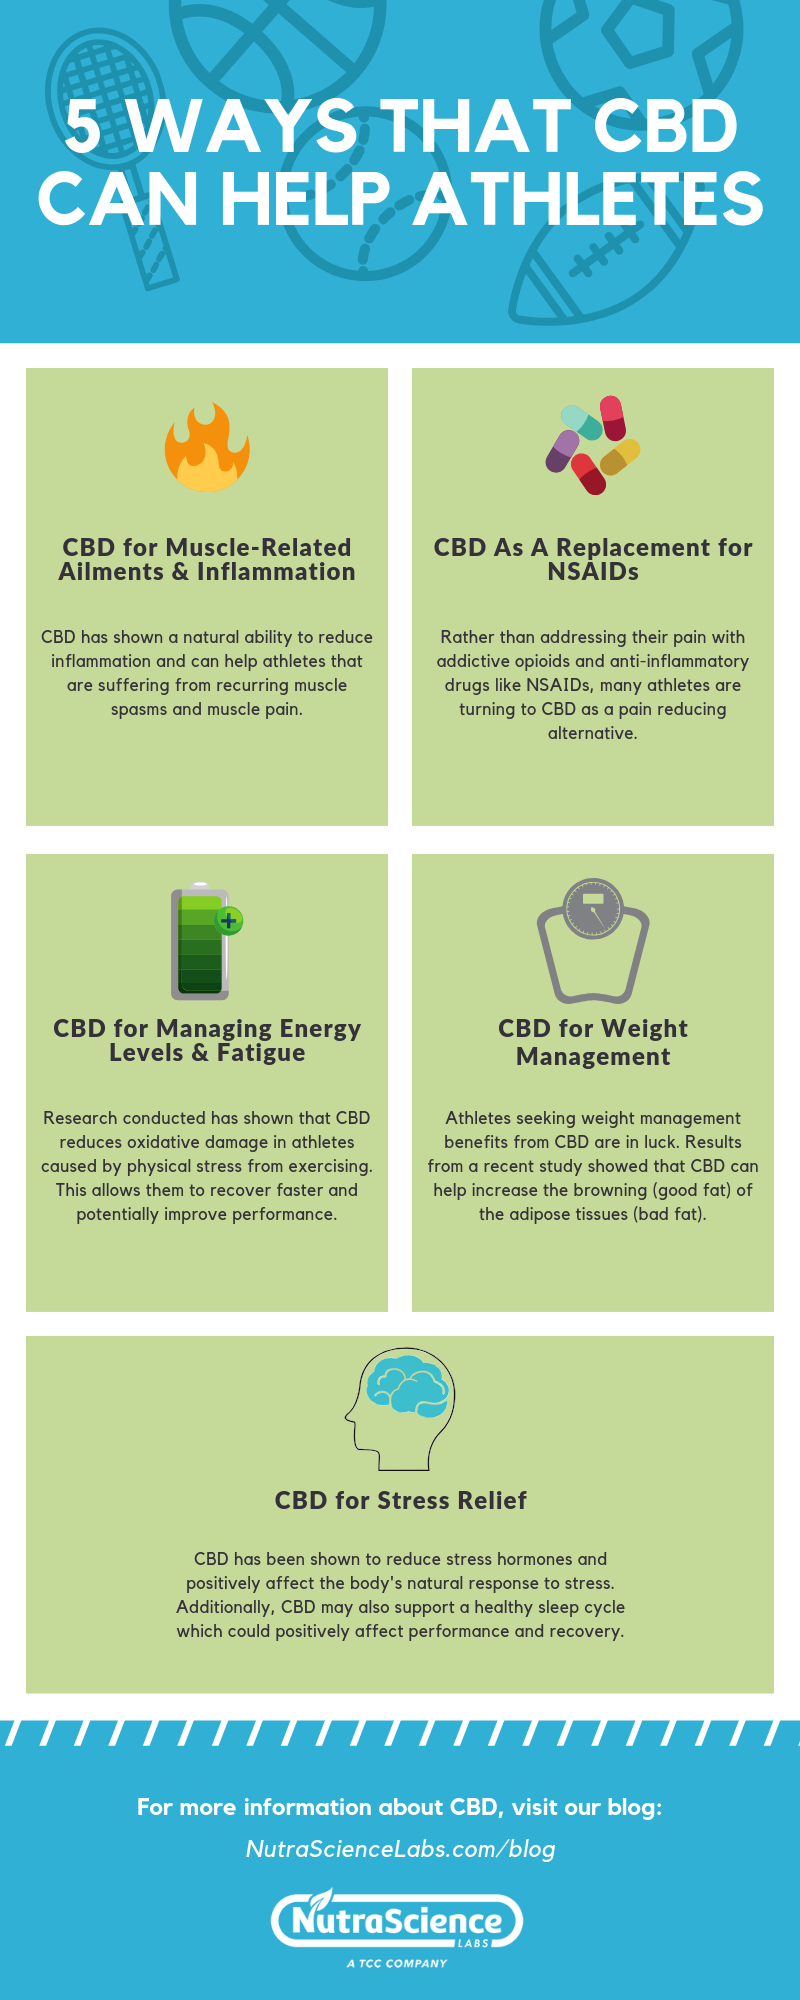 5 Ways that CBD Can Help Athletes - Infographic